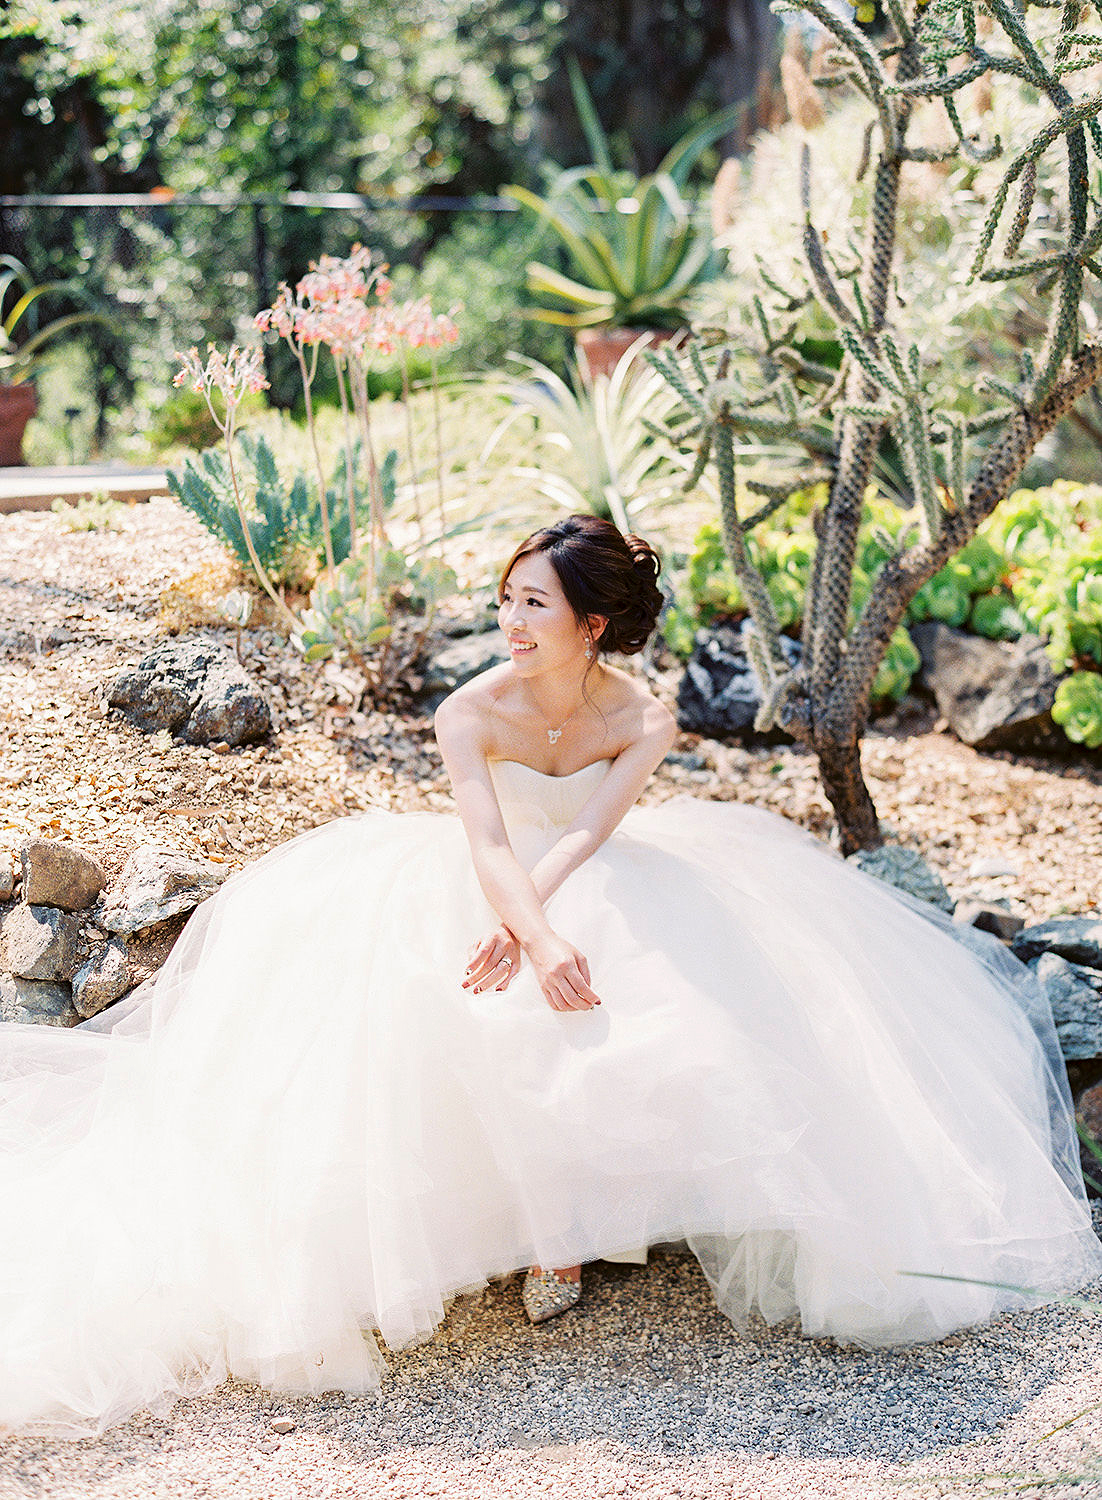 A Princess-Inspired Bridal Gown